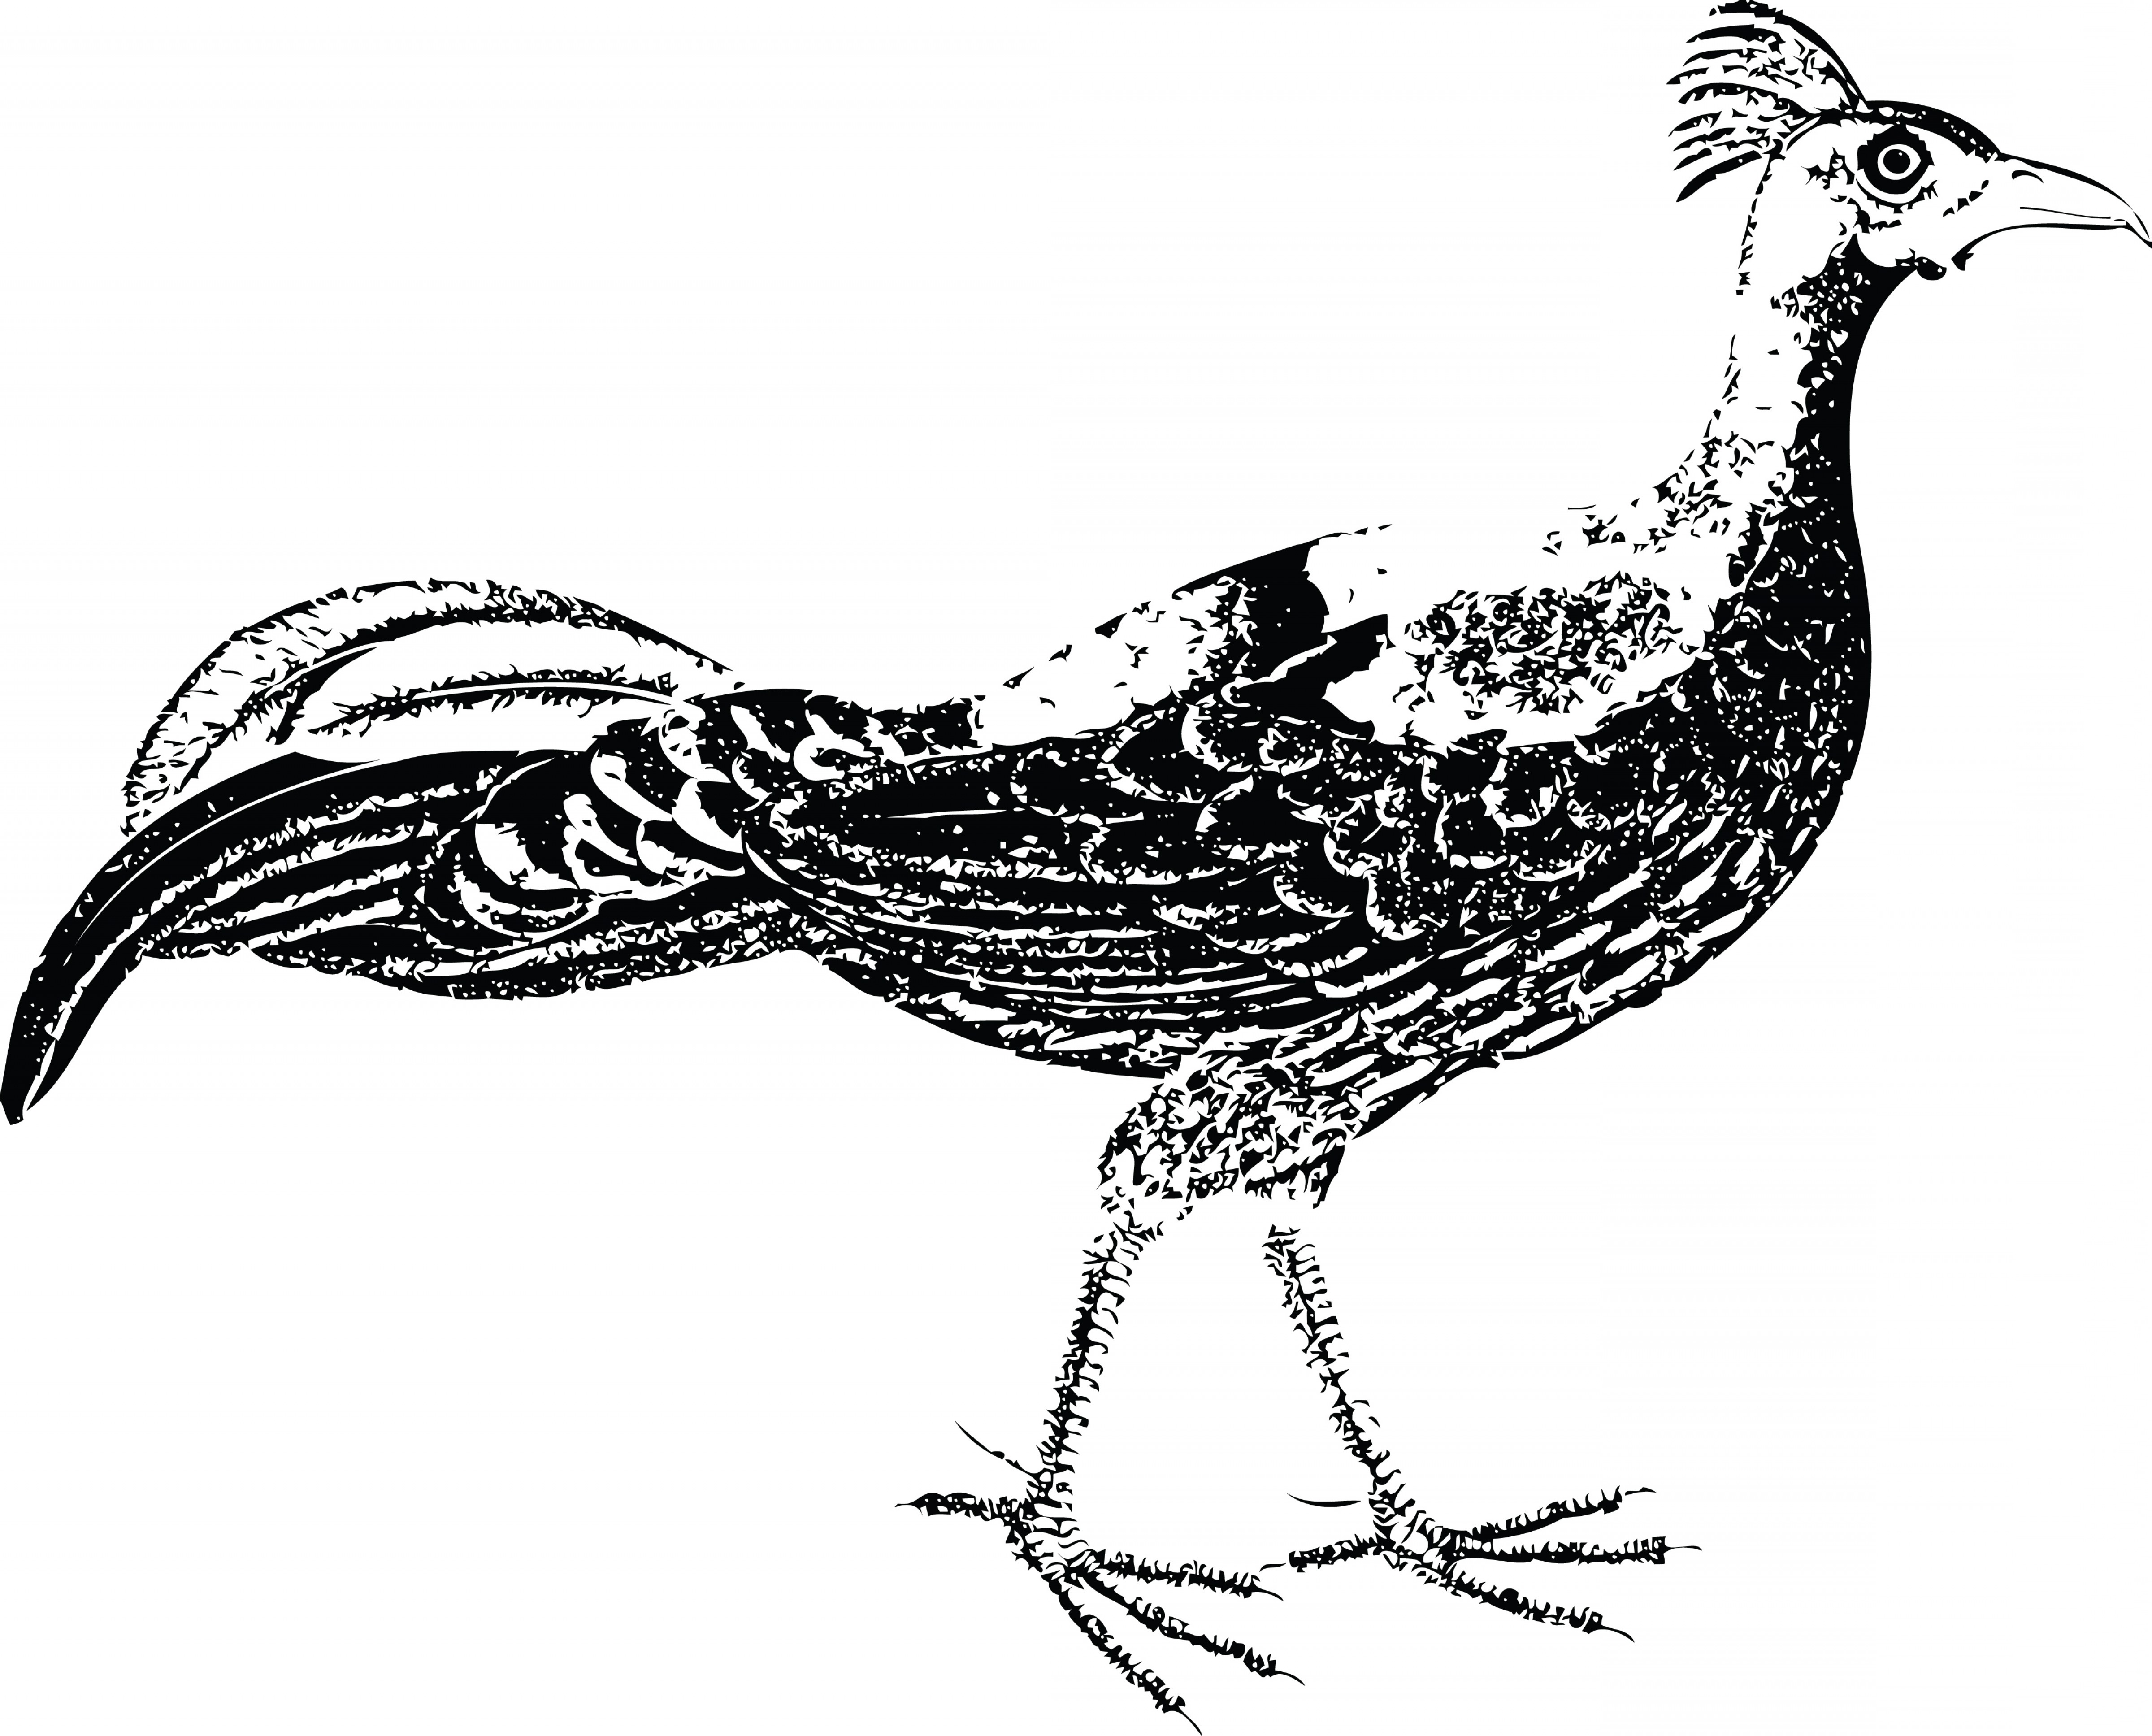 Free clipart generic bird images black and white. Of a pheasant soidergi